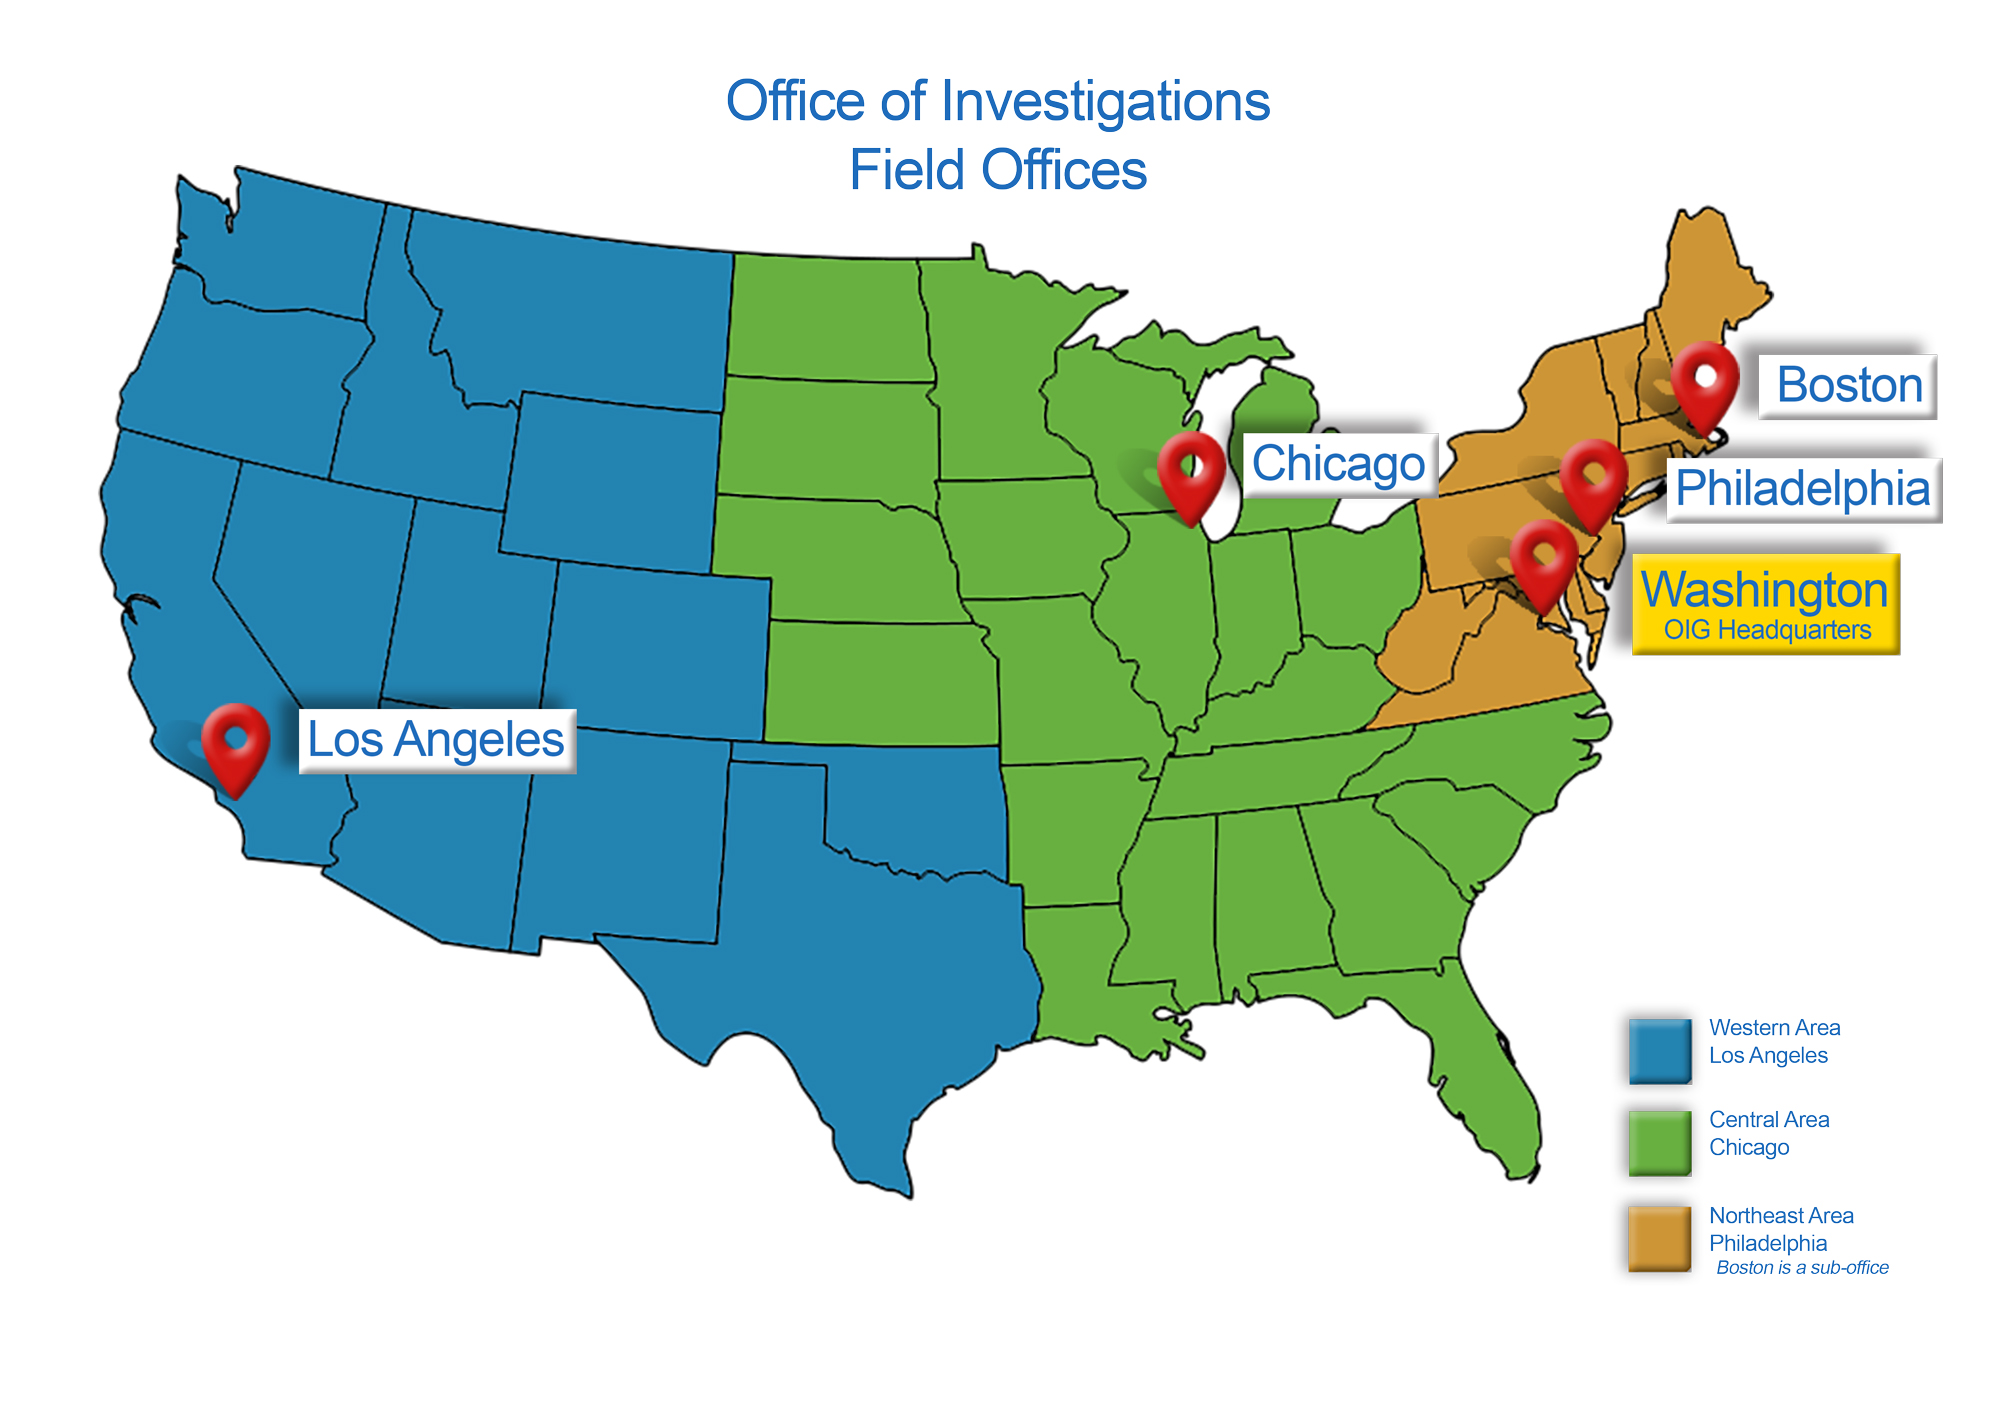 Investigations Field Office Locations